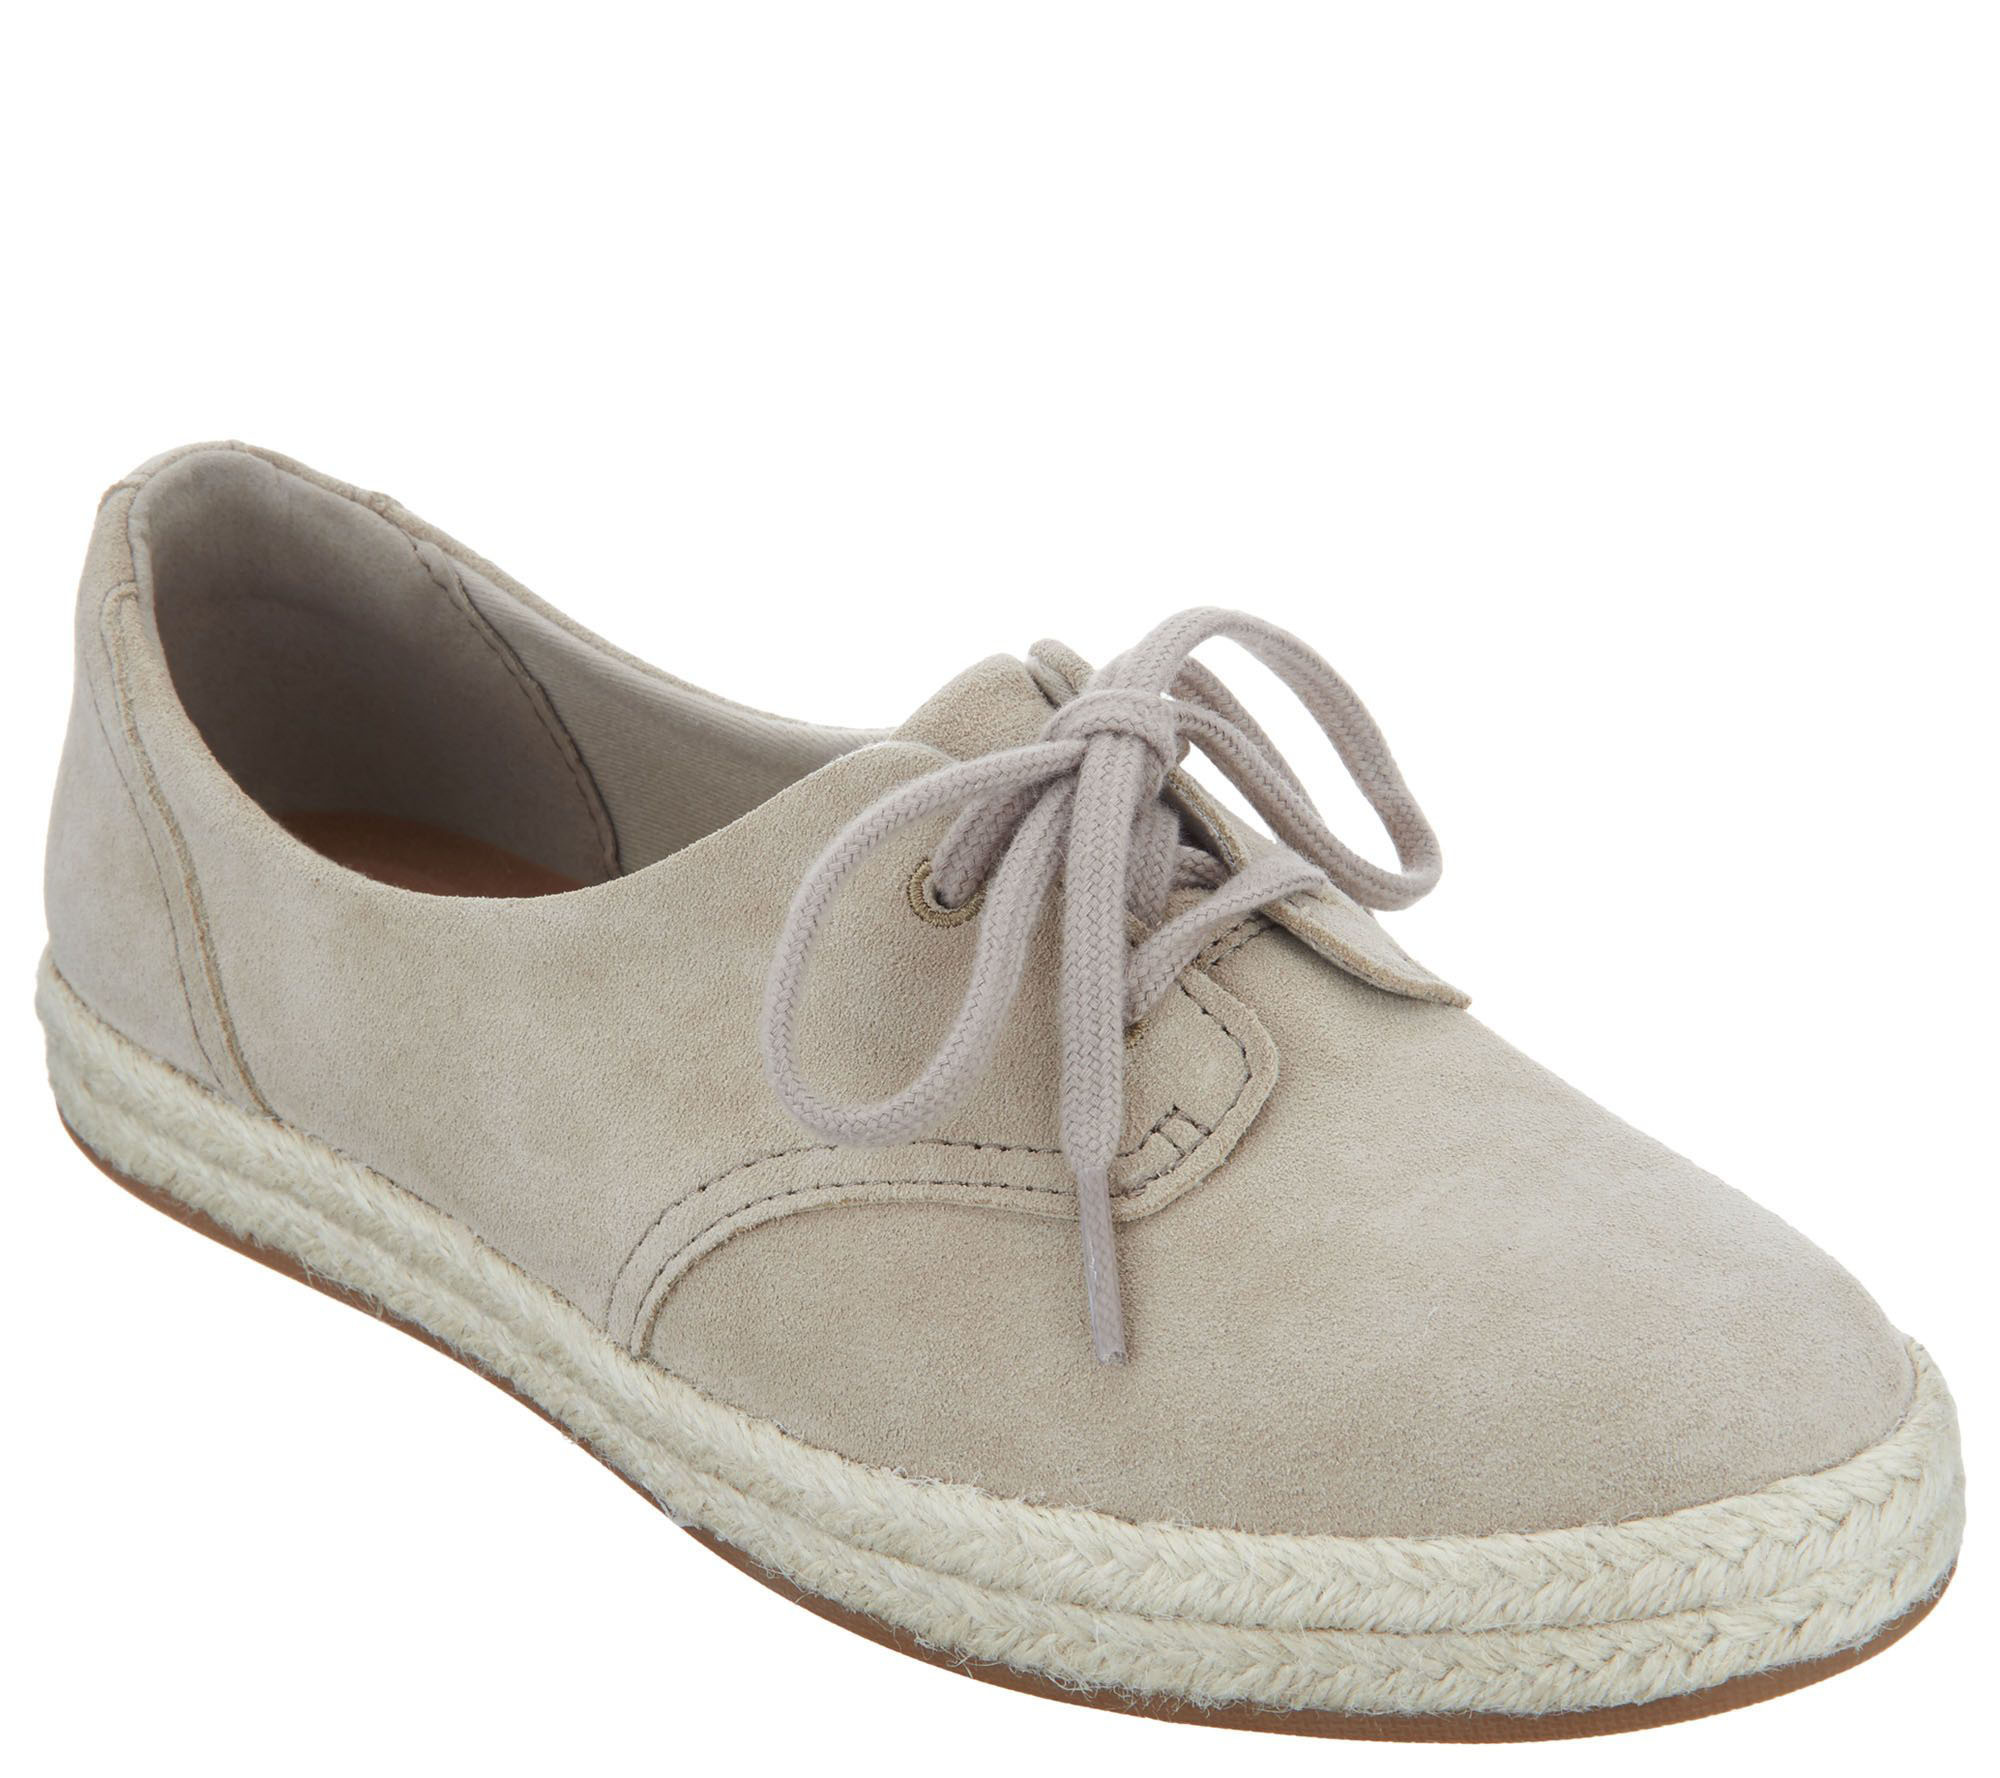 Clarks Suede Lace-up Espadrilles - Azella Jazlynn